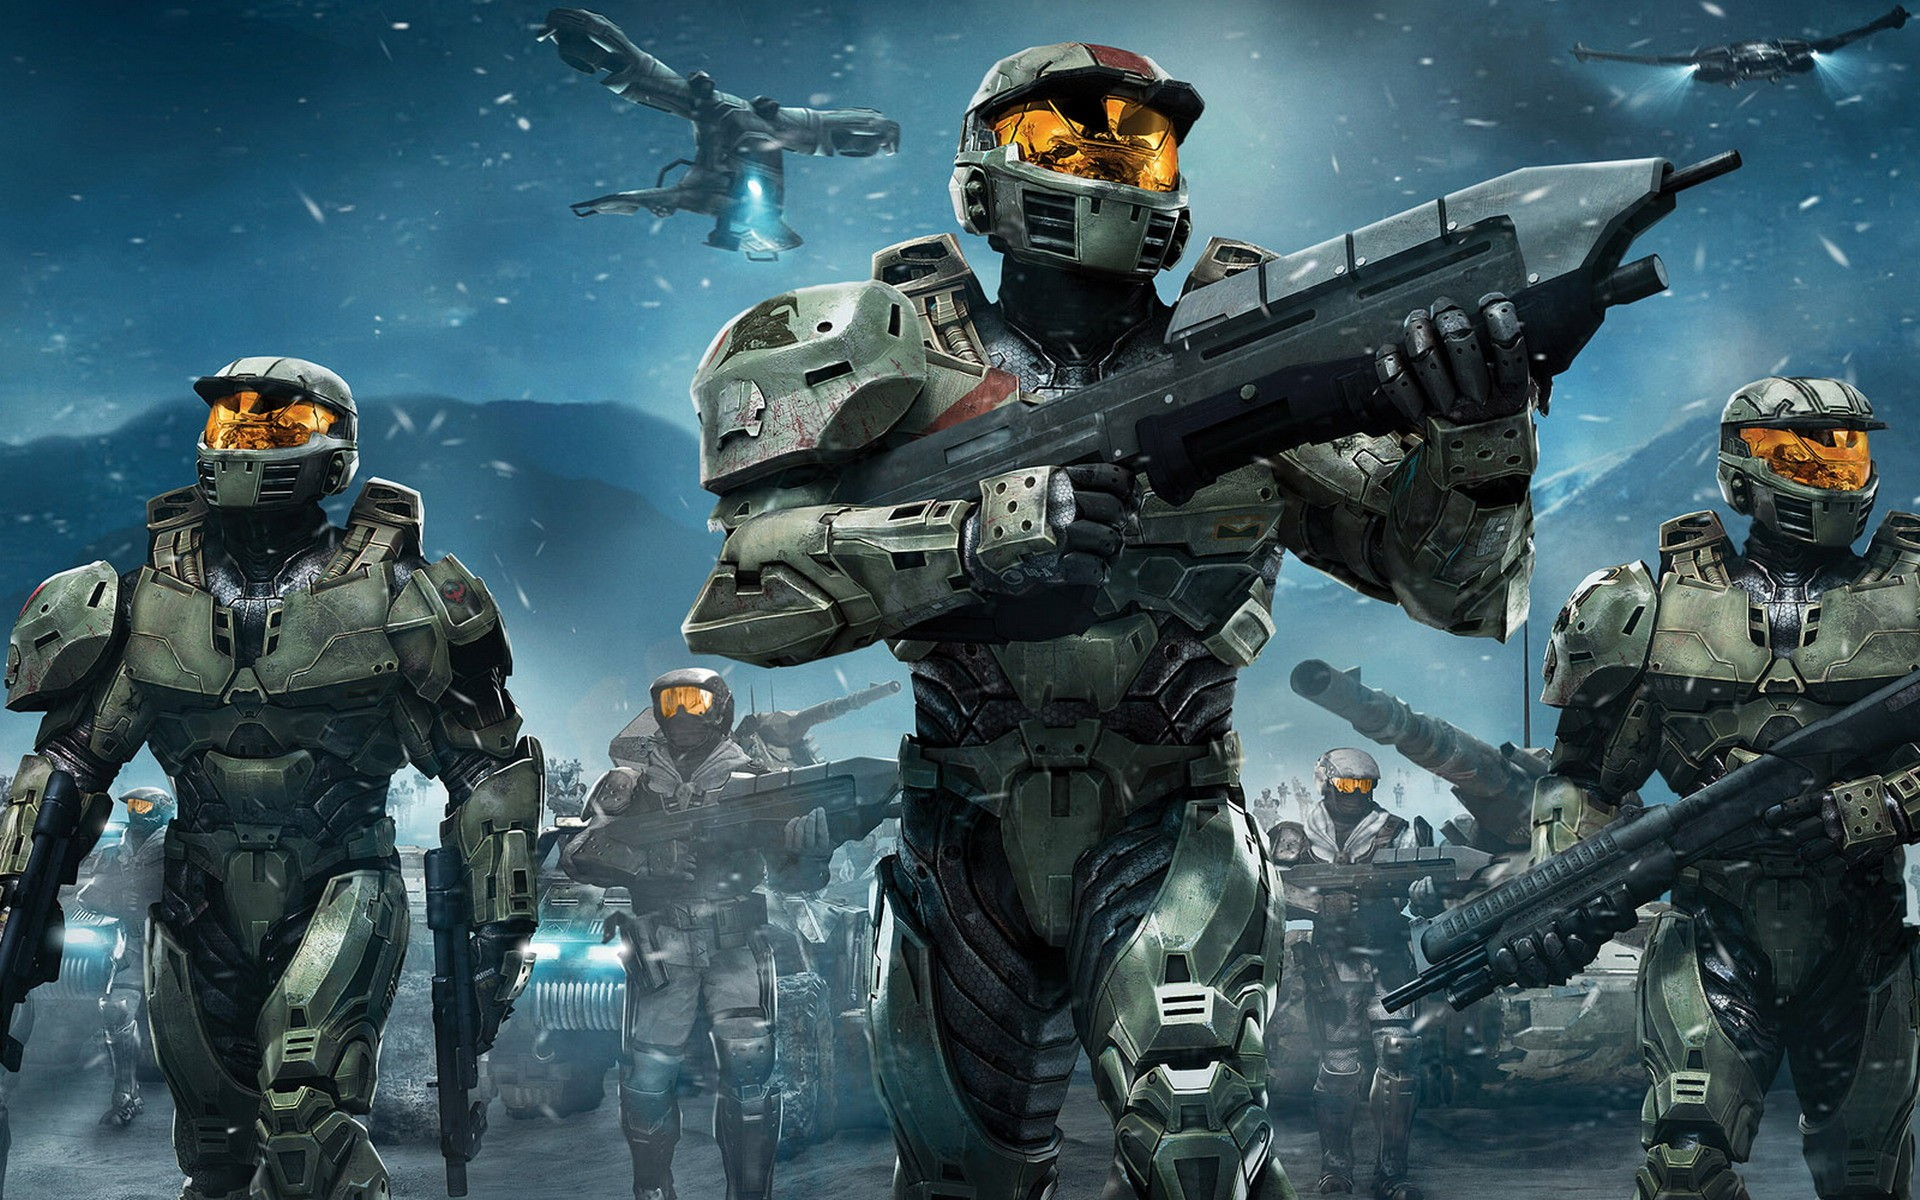 Halo Wallpaper Hd Download Free Awesome Backgrounds For